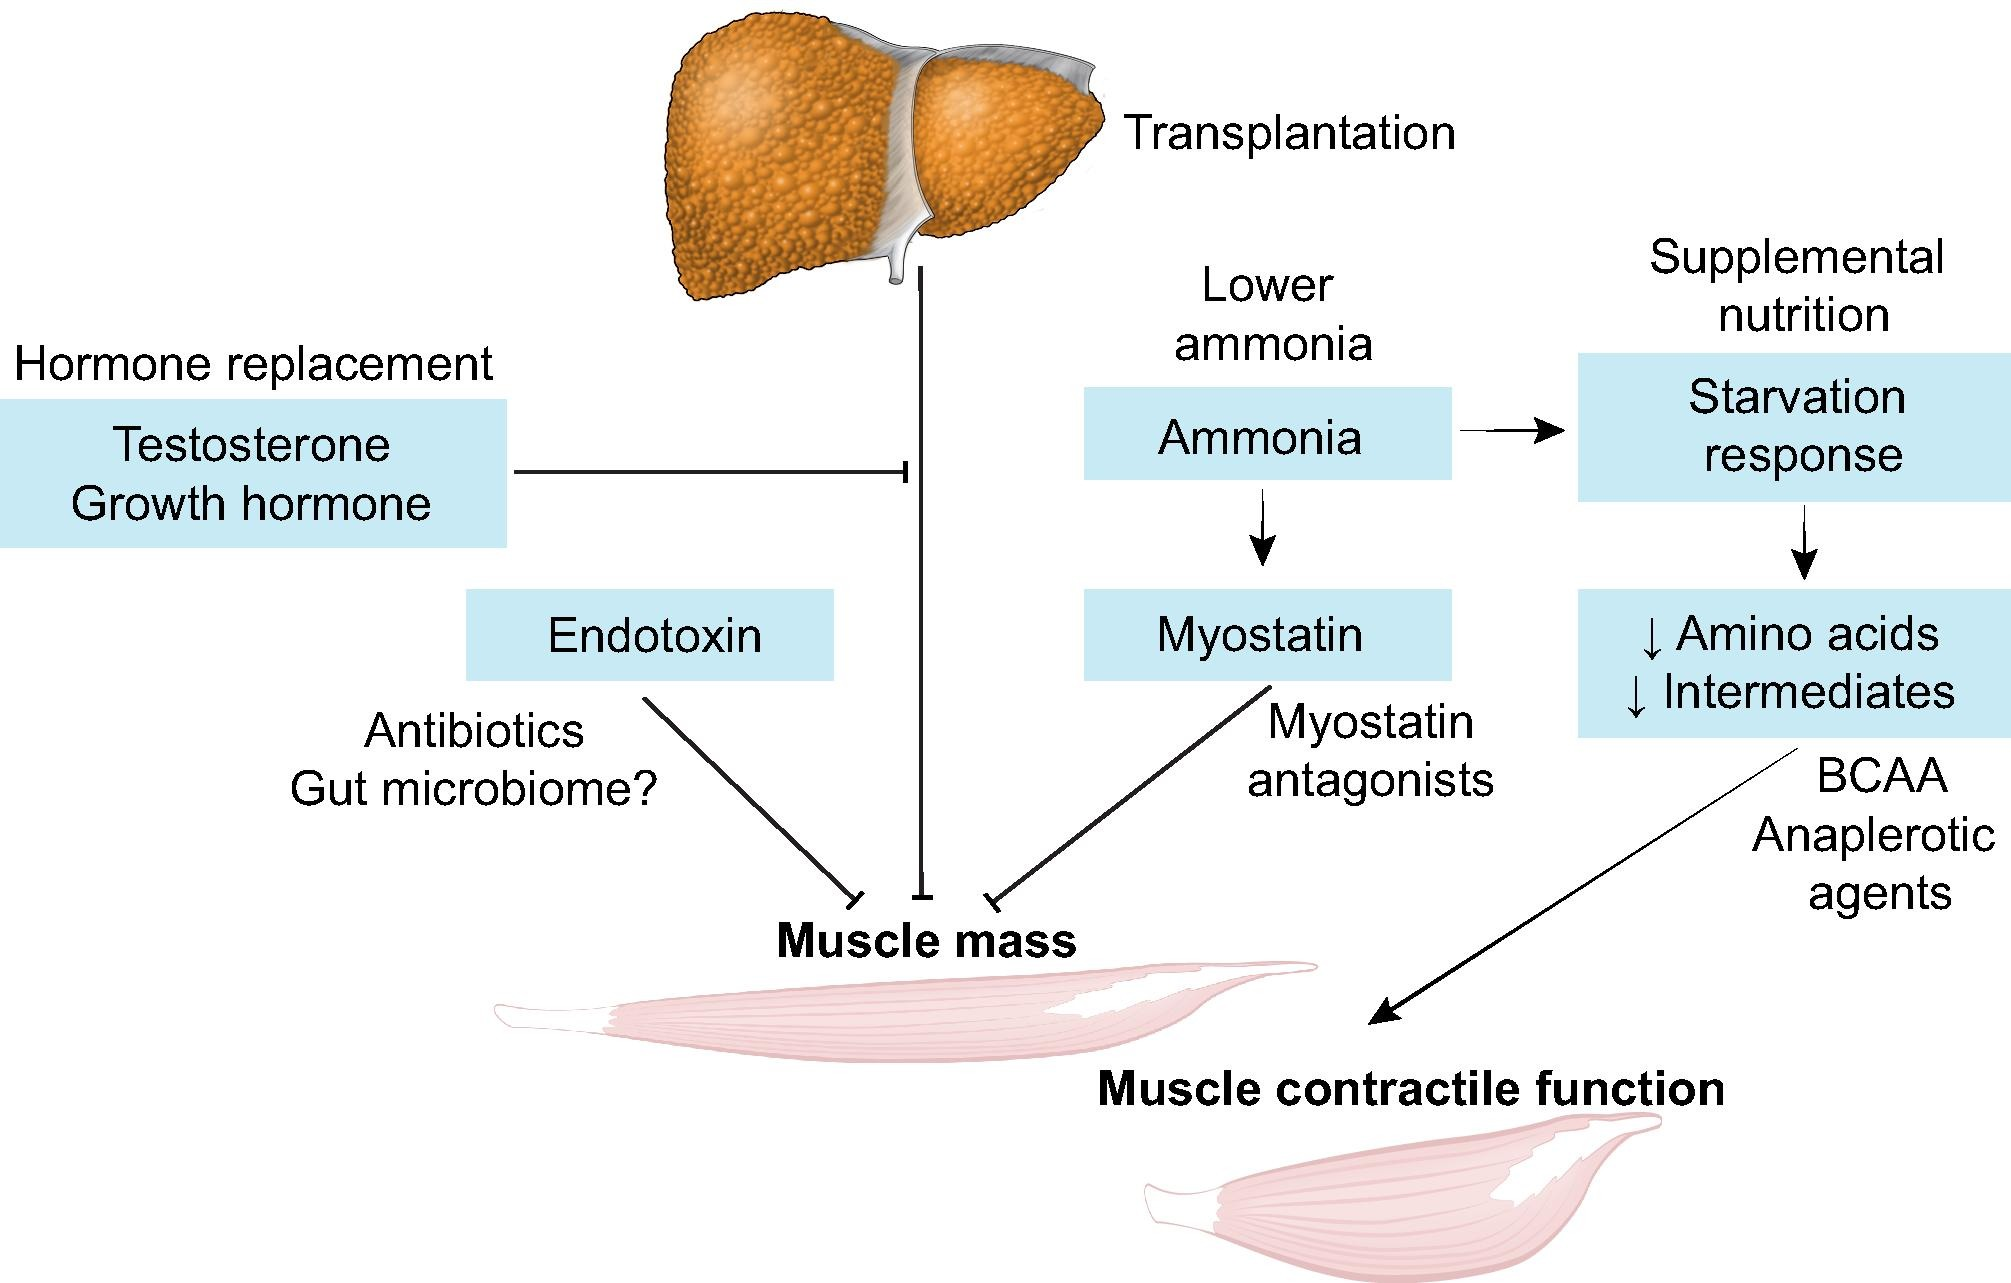 overview of sarcopenia The definition of sarcopenia continues to evolve a summary of the proposed mechanisms for age-related decline in muscle mass and strength is shown in box 1.